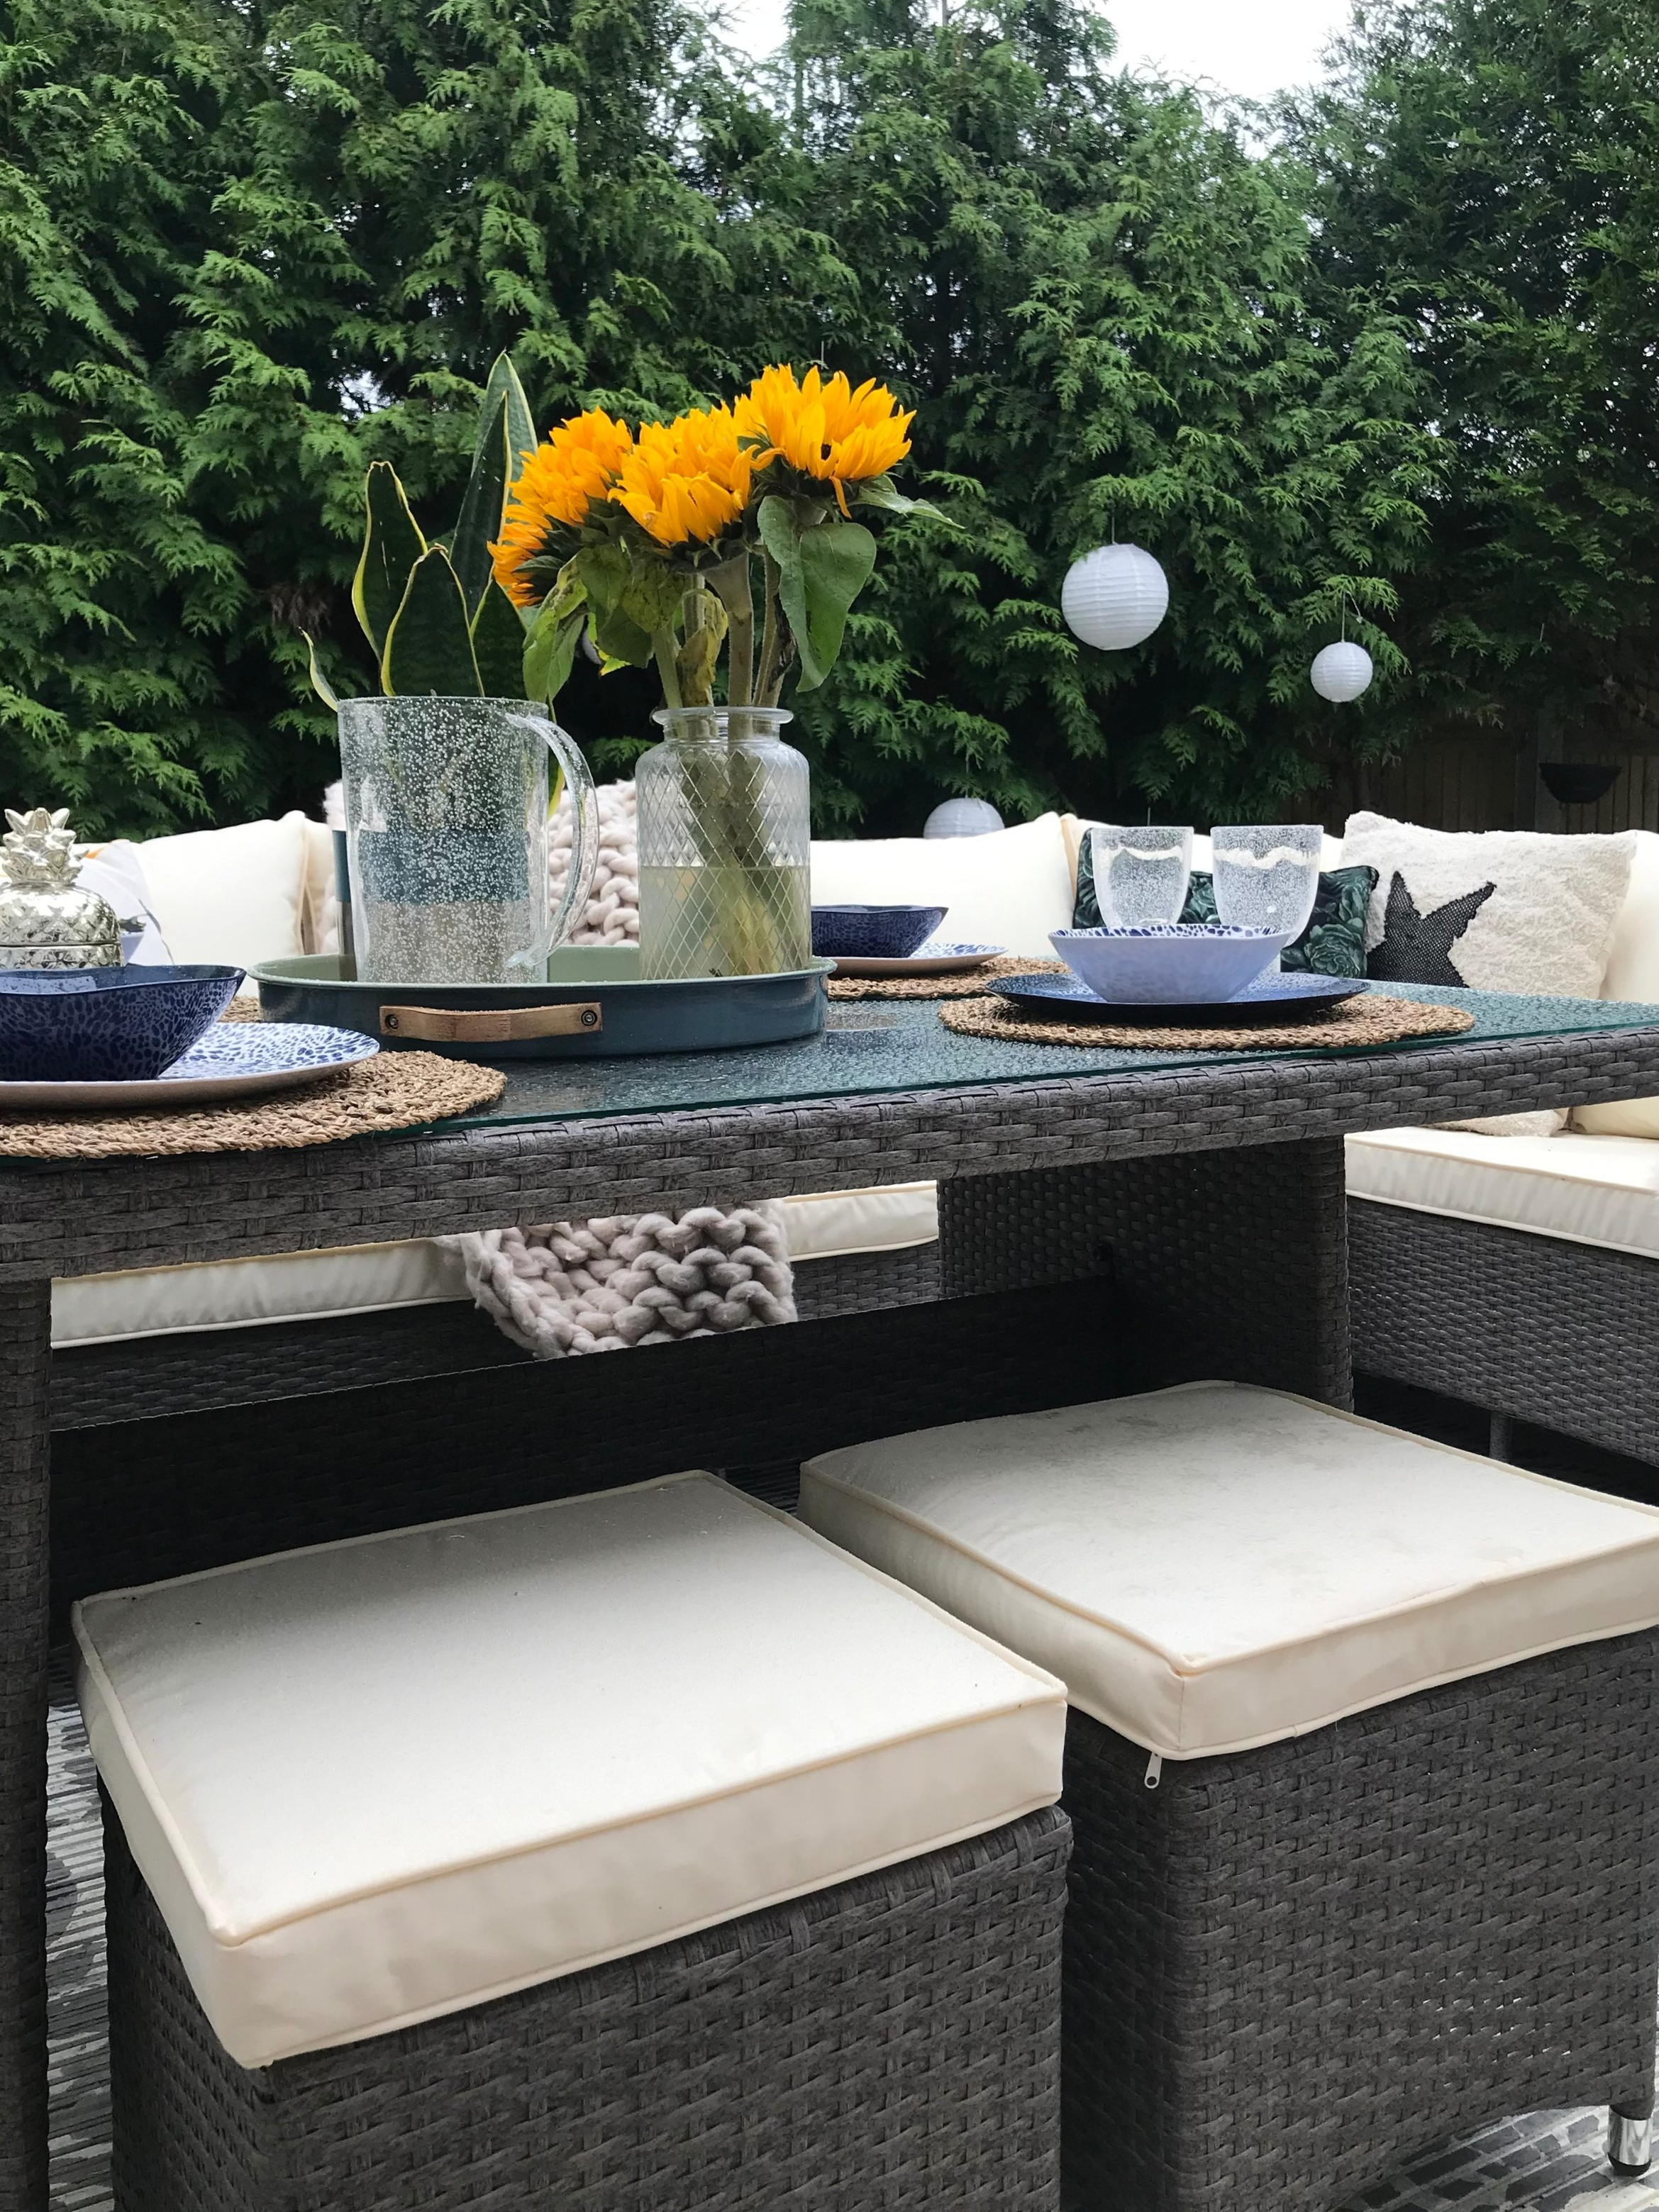 The stools give you extra room around the table and can be neatly tucked away when not needed